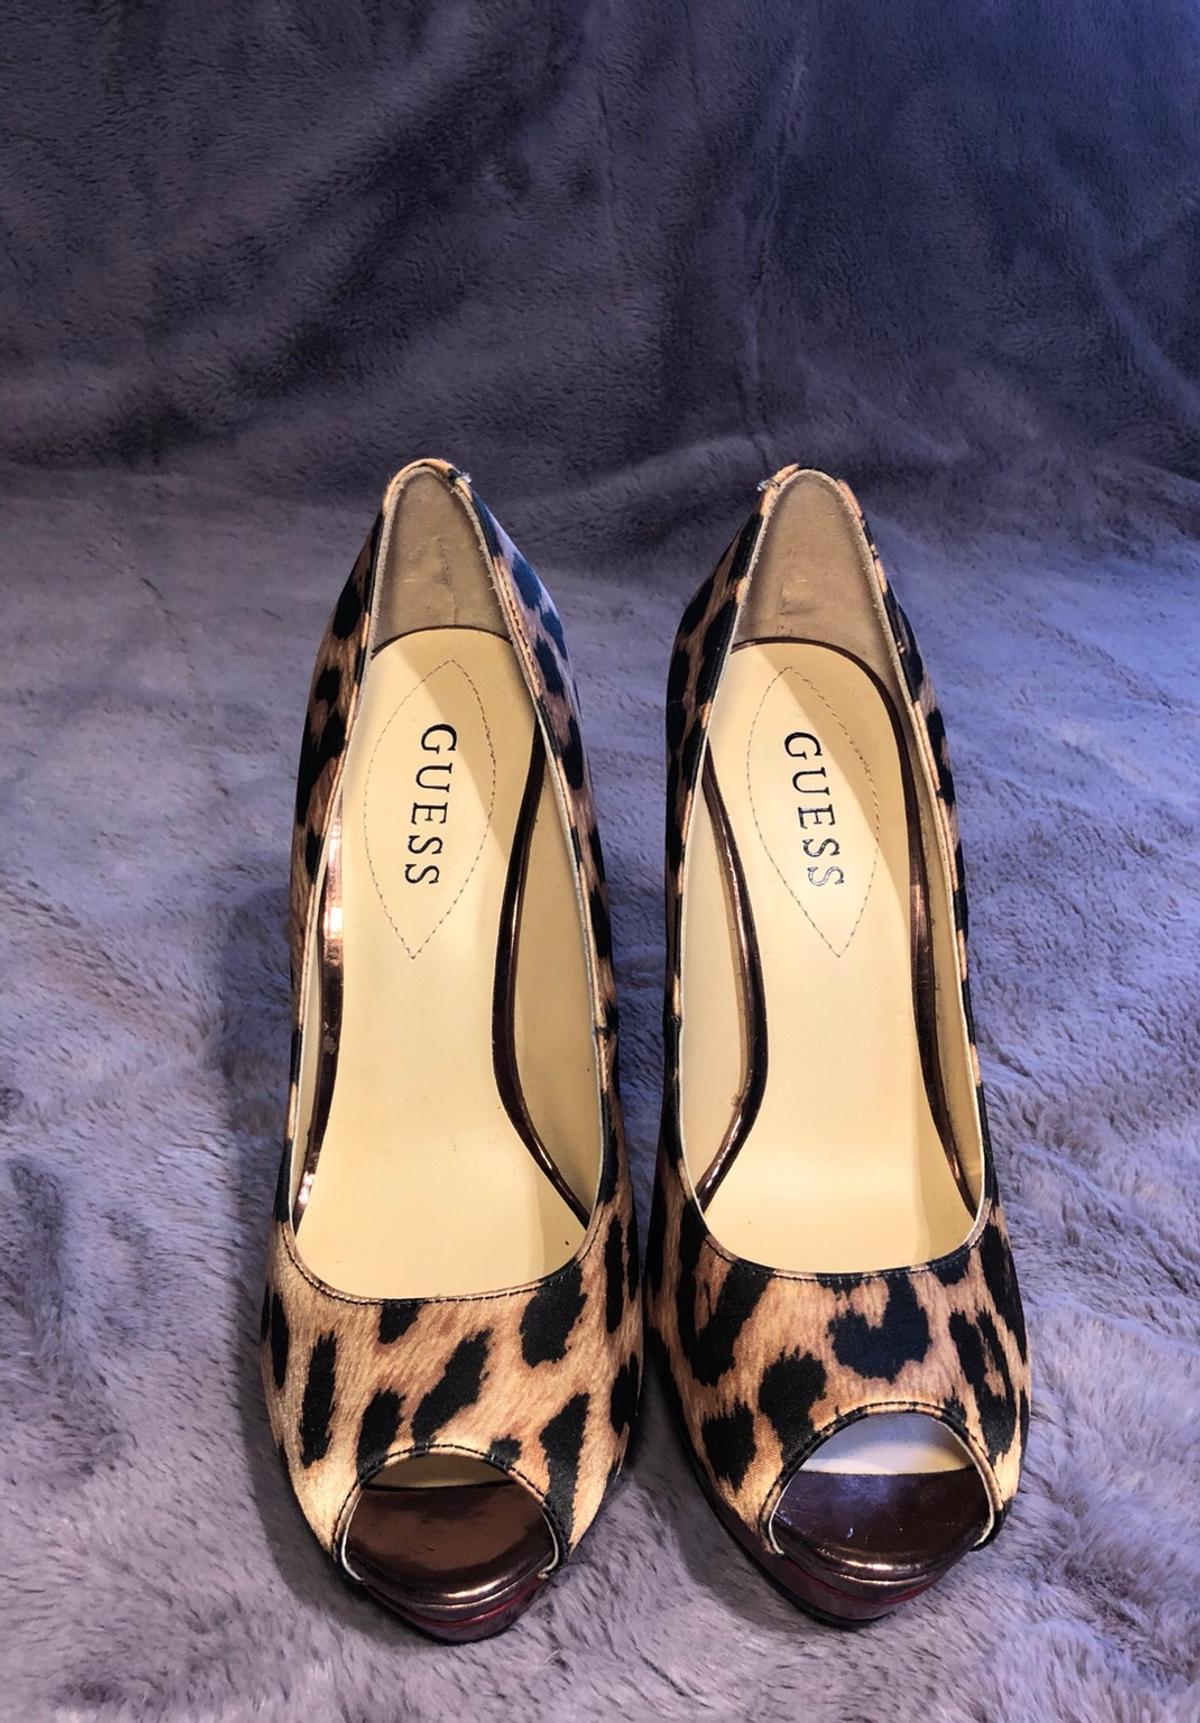 Brand new guess peep toe heels! in NW9 Barnet für 25,00